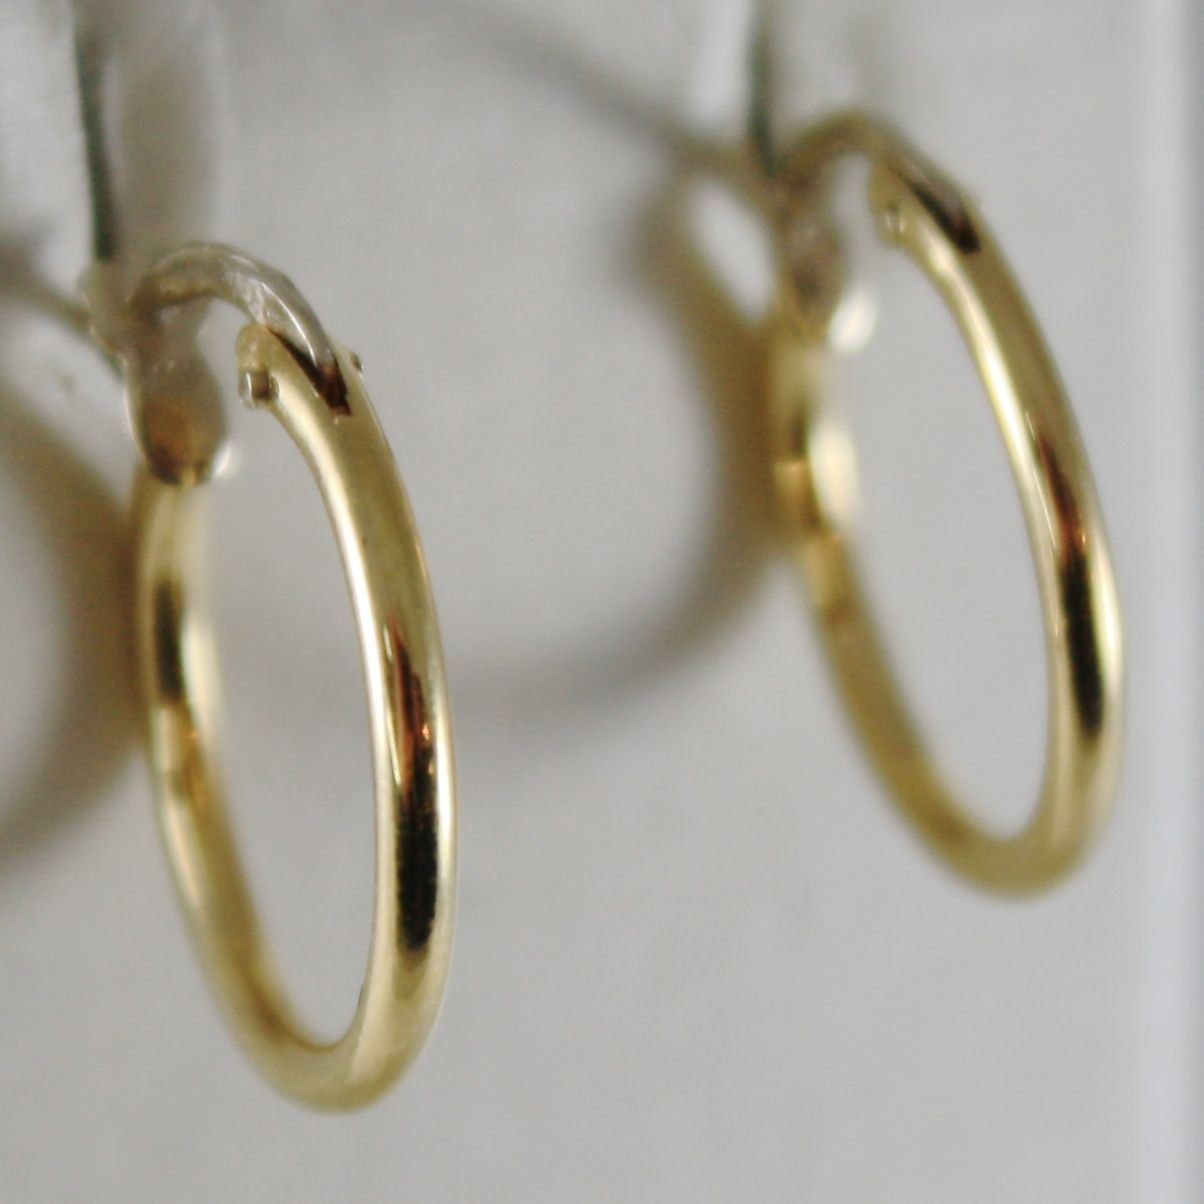 18K YELLOW GOLD EARRINGS LITTLE CIRCLE HOOP 16 MM 0.63 IN DIAMETER MADE IN ITALY